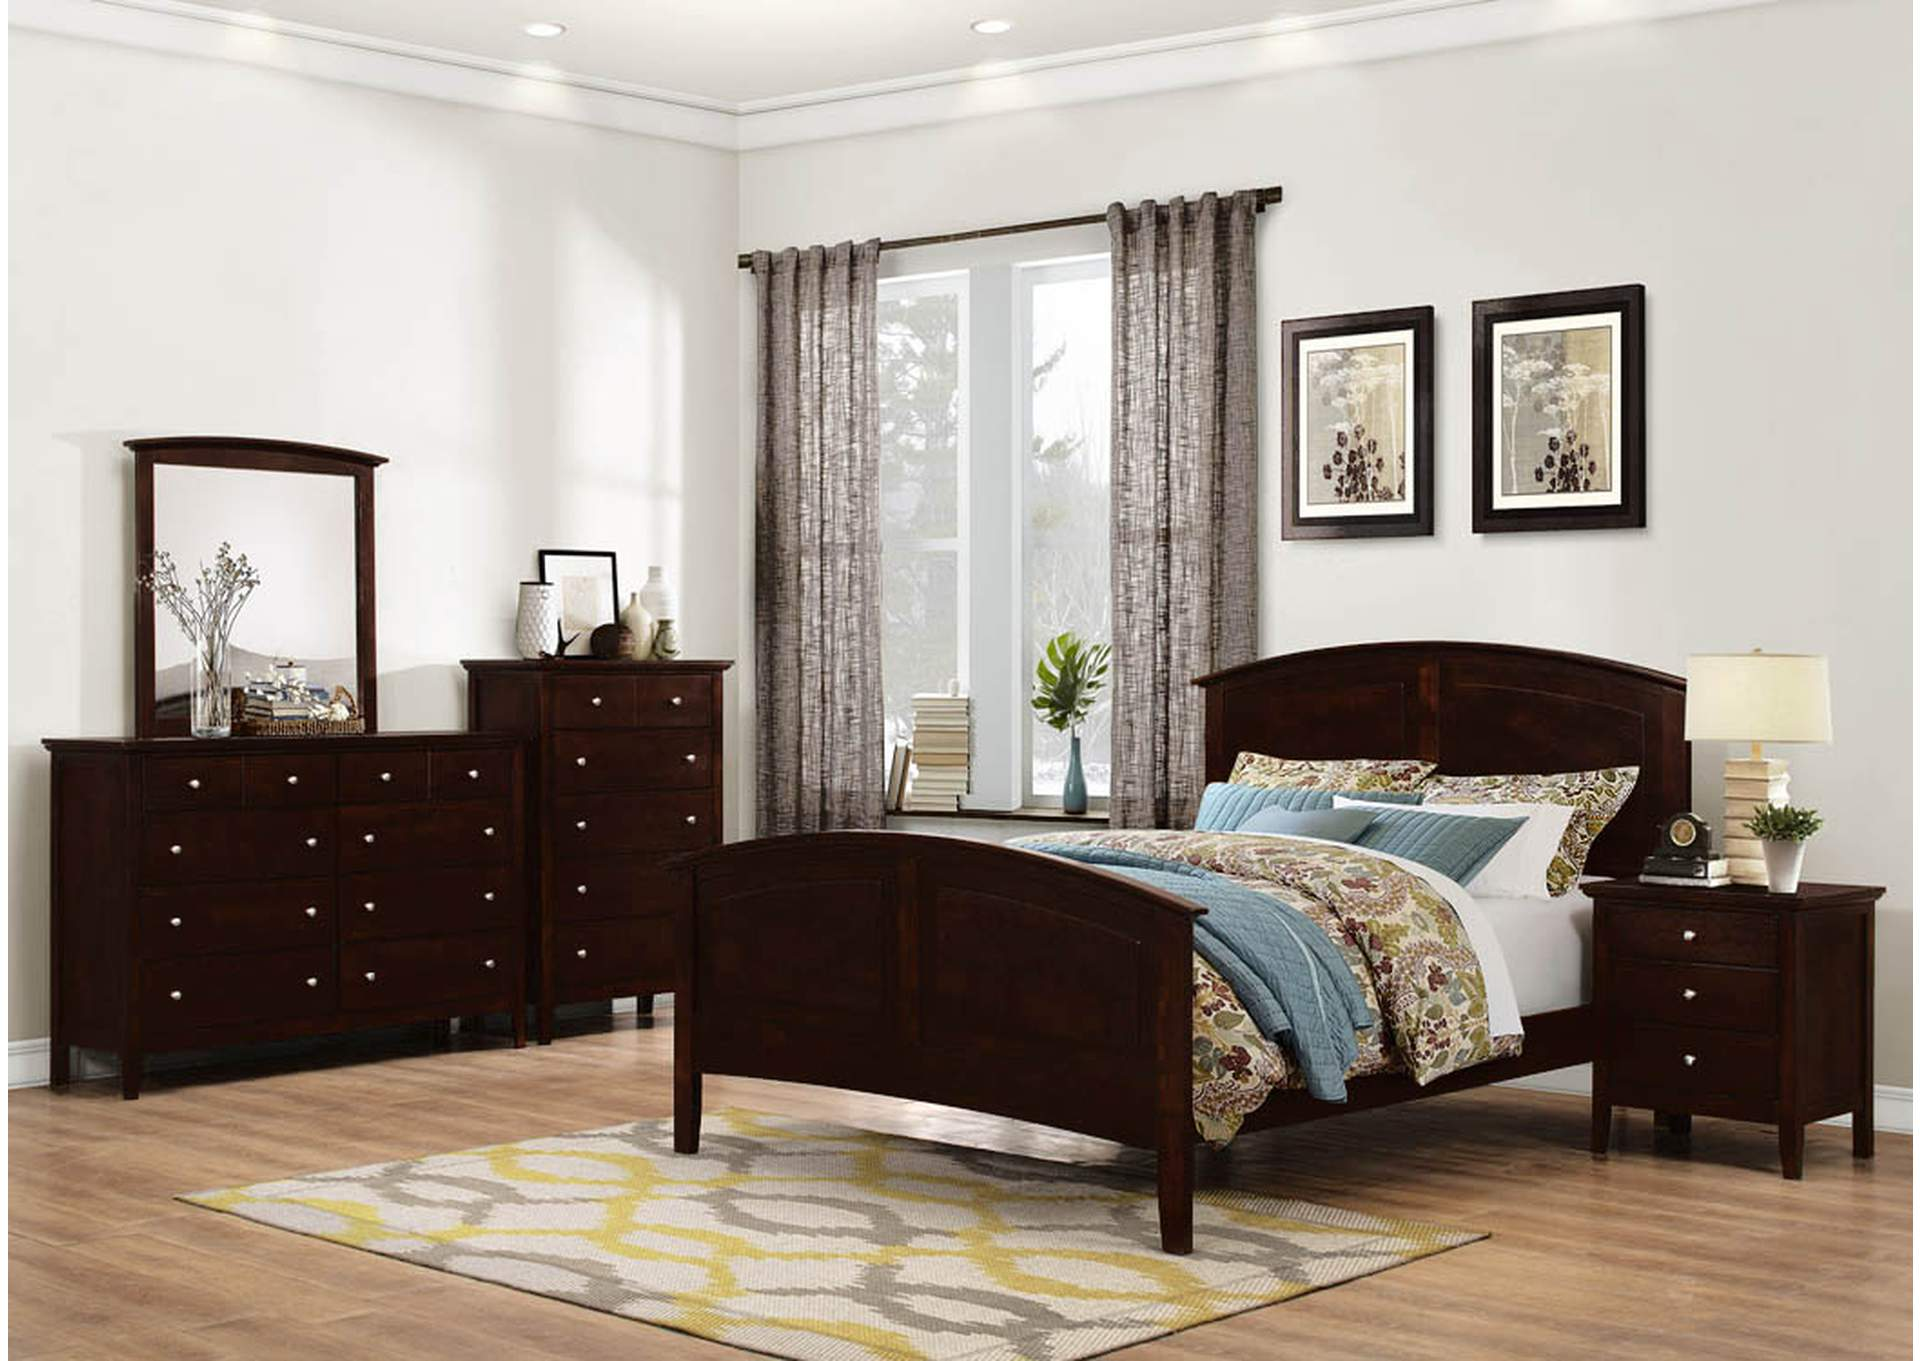 Windlore Dark Cherry Panel Queen 5 Piece Bedroom Set W/ Nightstand, Chest, Dresser & Mirror,Global Trading